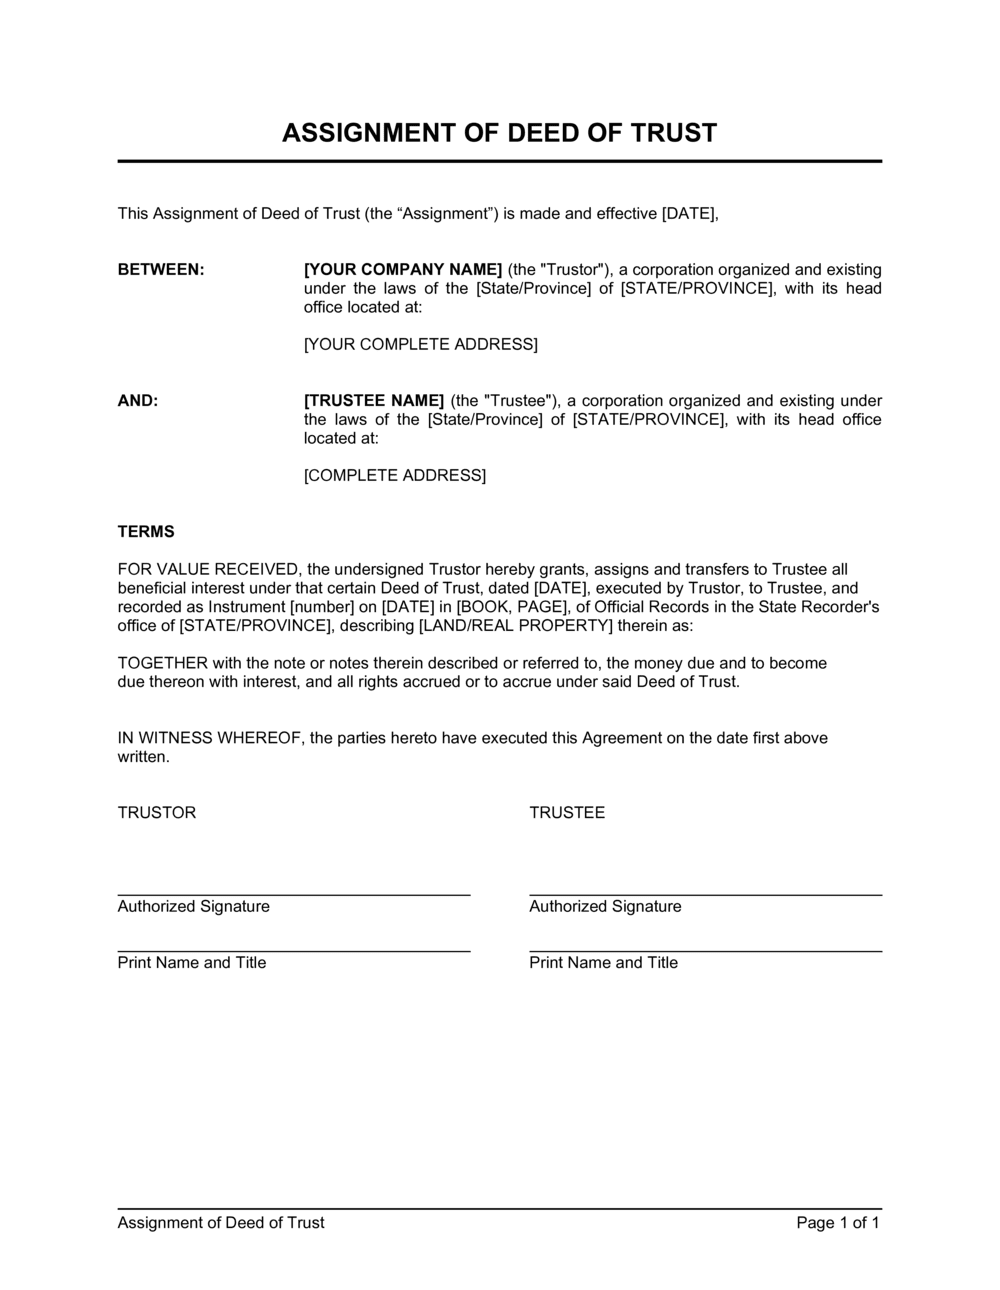 Business-in-a-Box's Assignment of Deed of Trust Template